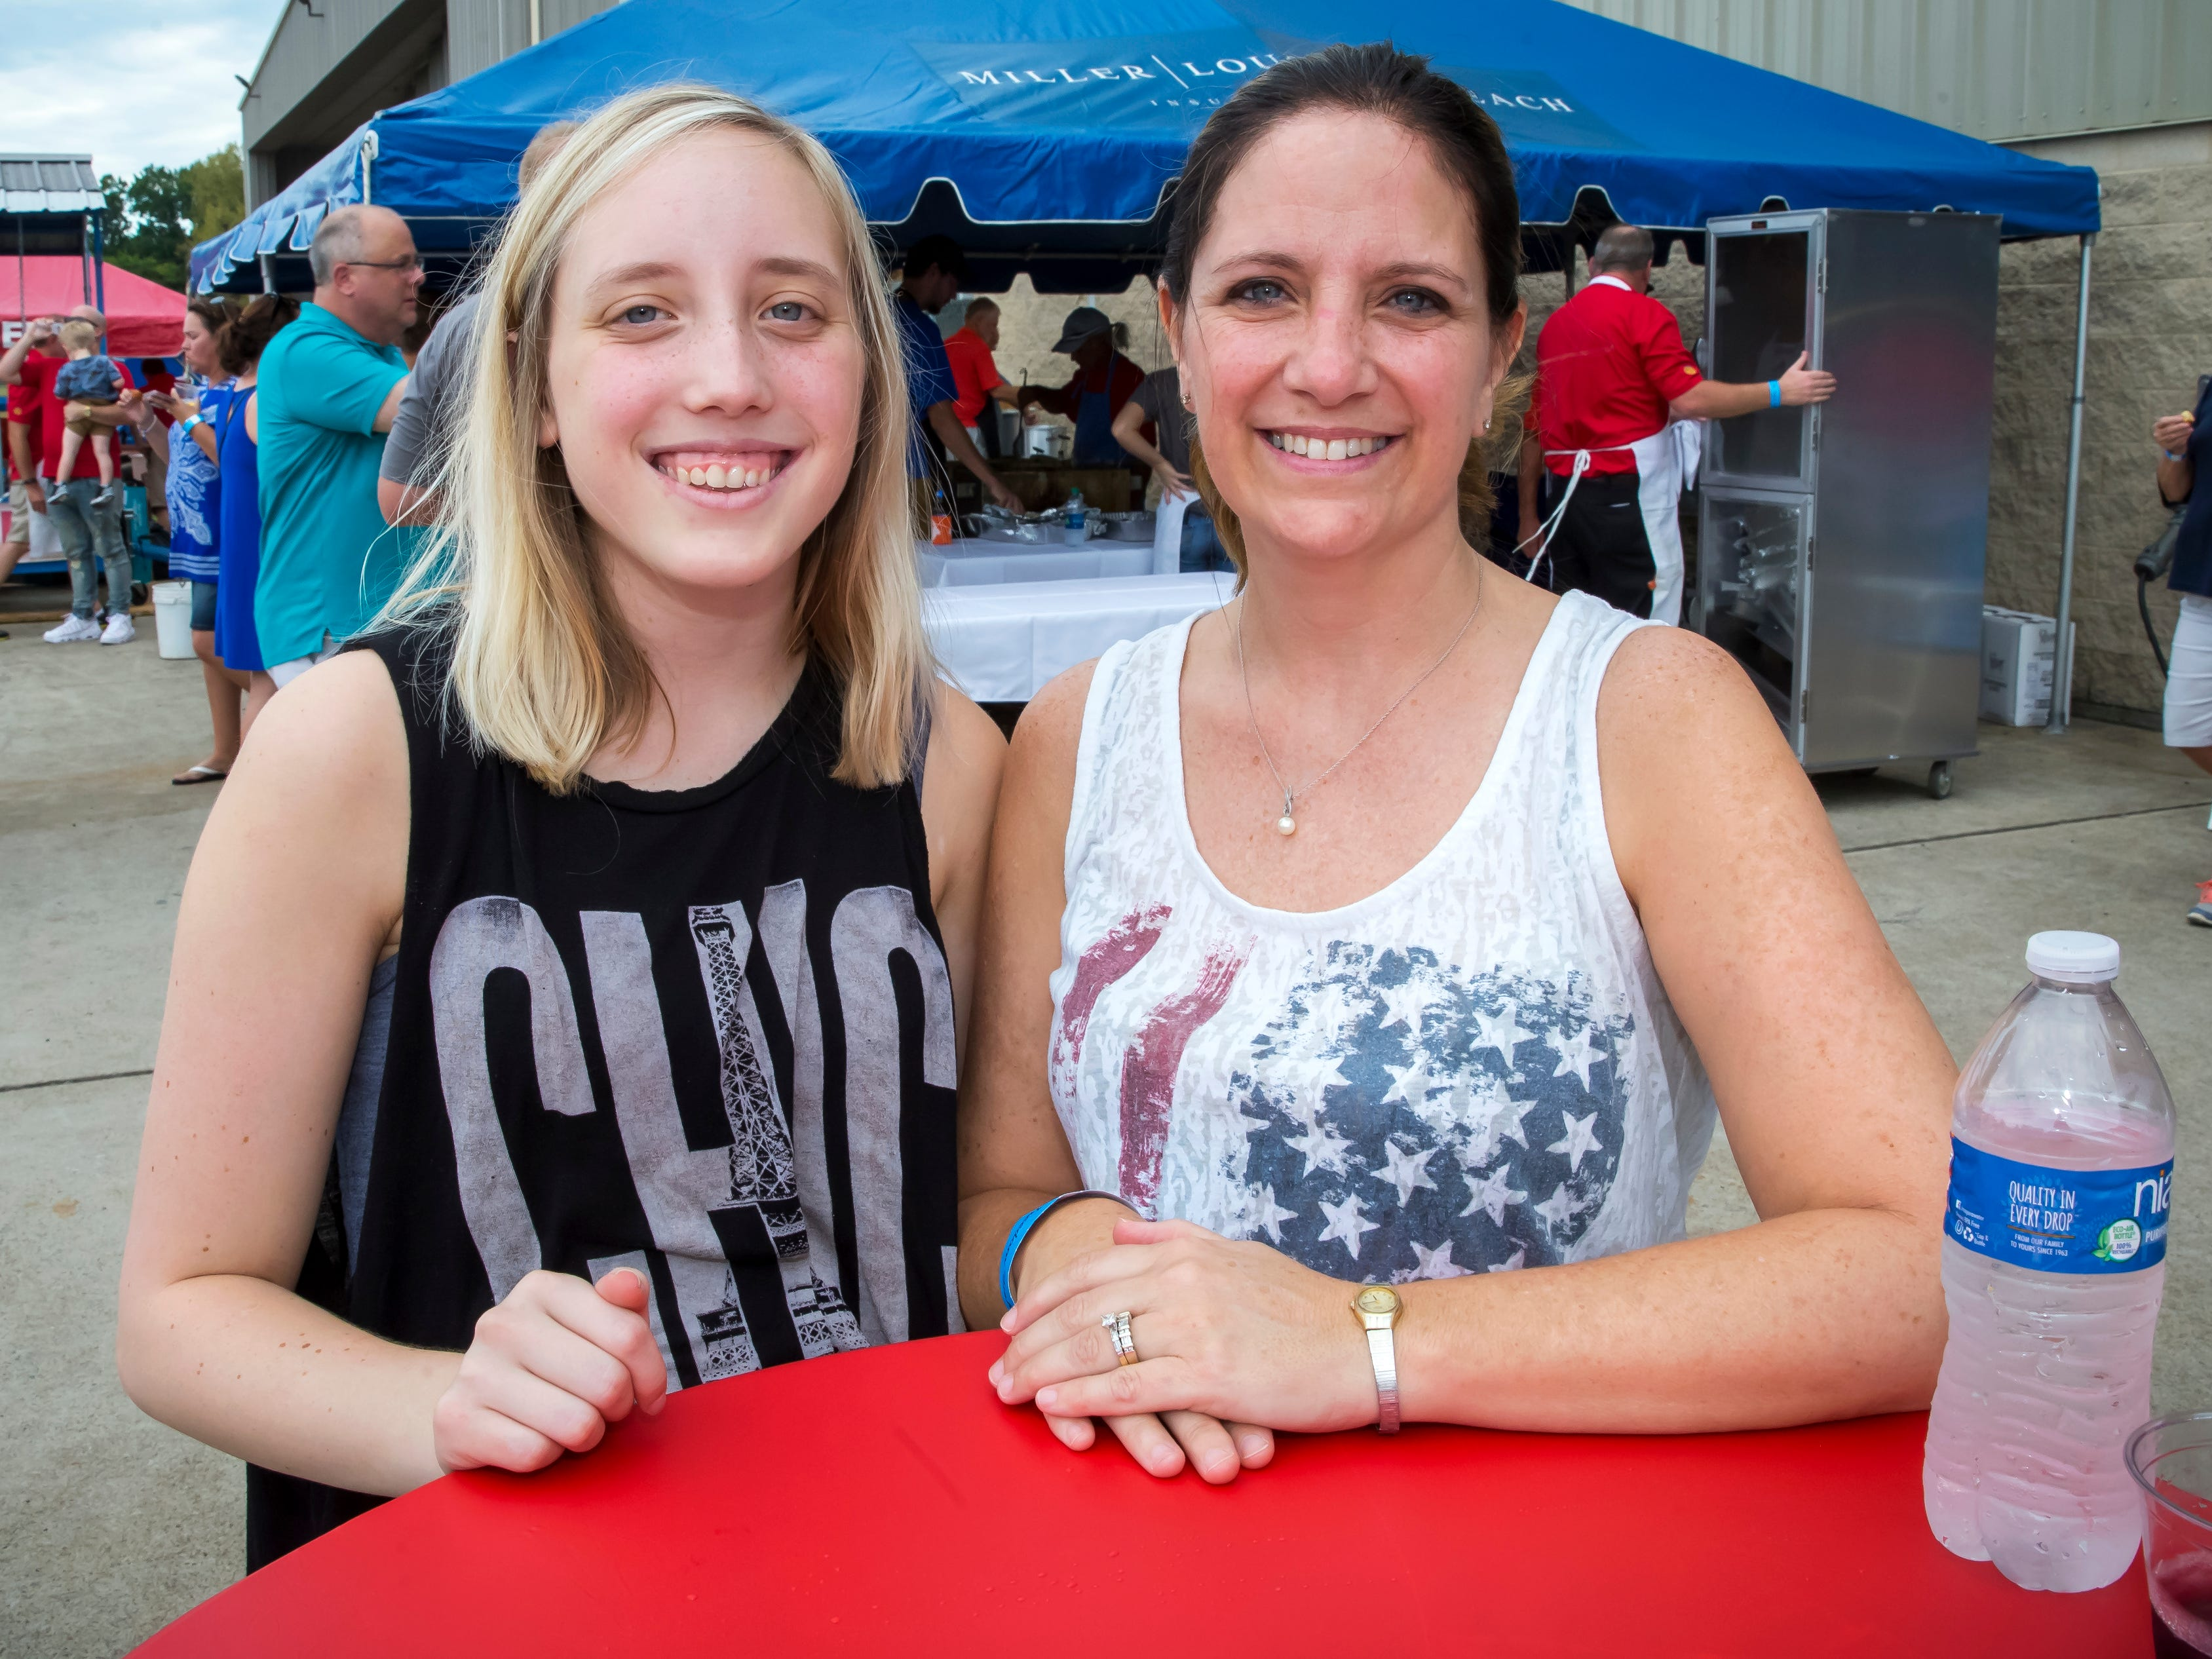 Heather and Shannon French at the 2018 Wings of Freedom Fish Fry hosted by Smyrna Rotary Club. The event was held at the Corporate Flight Management Hangar at Smyrna Airport.